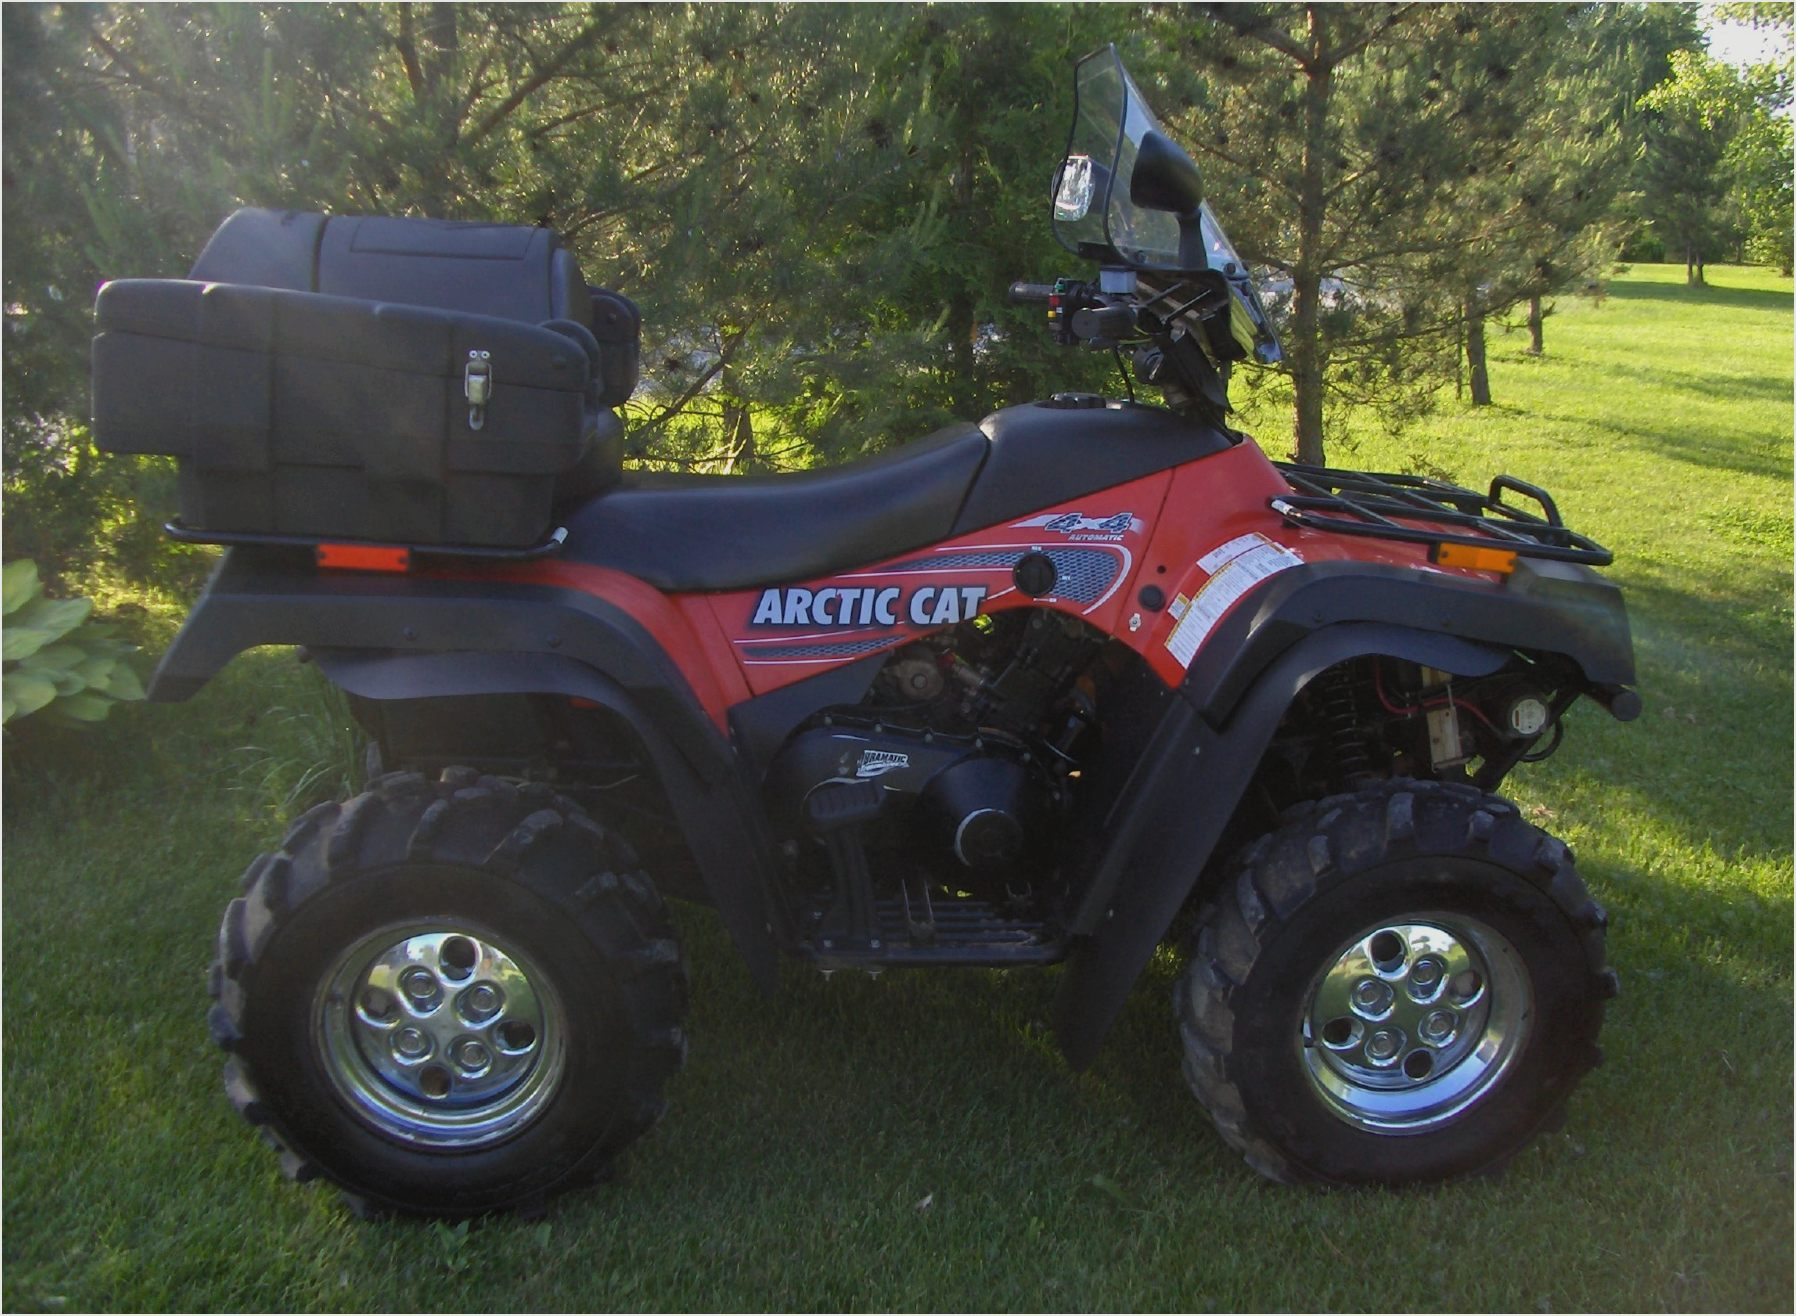 Arctic Cat 500 2000 images #155885